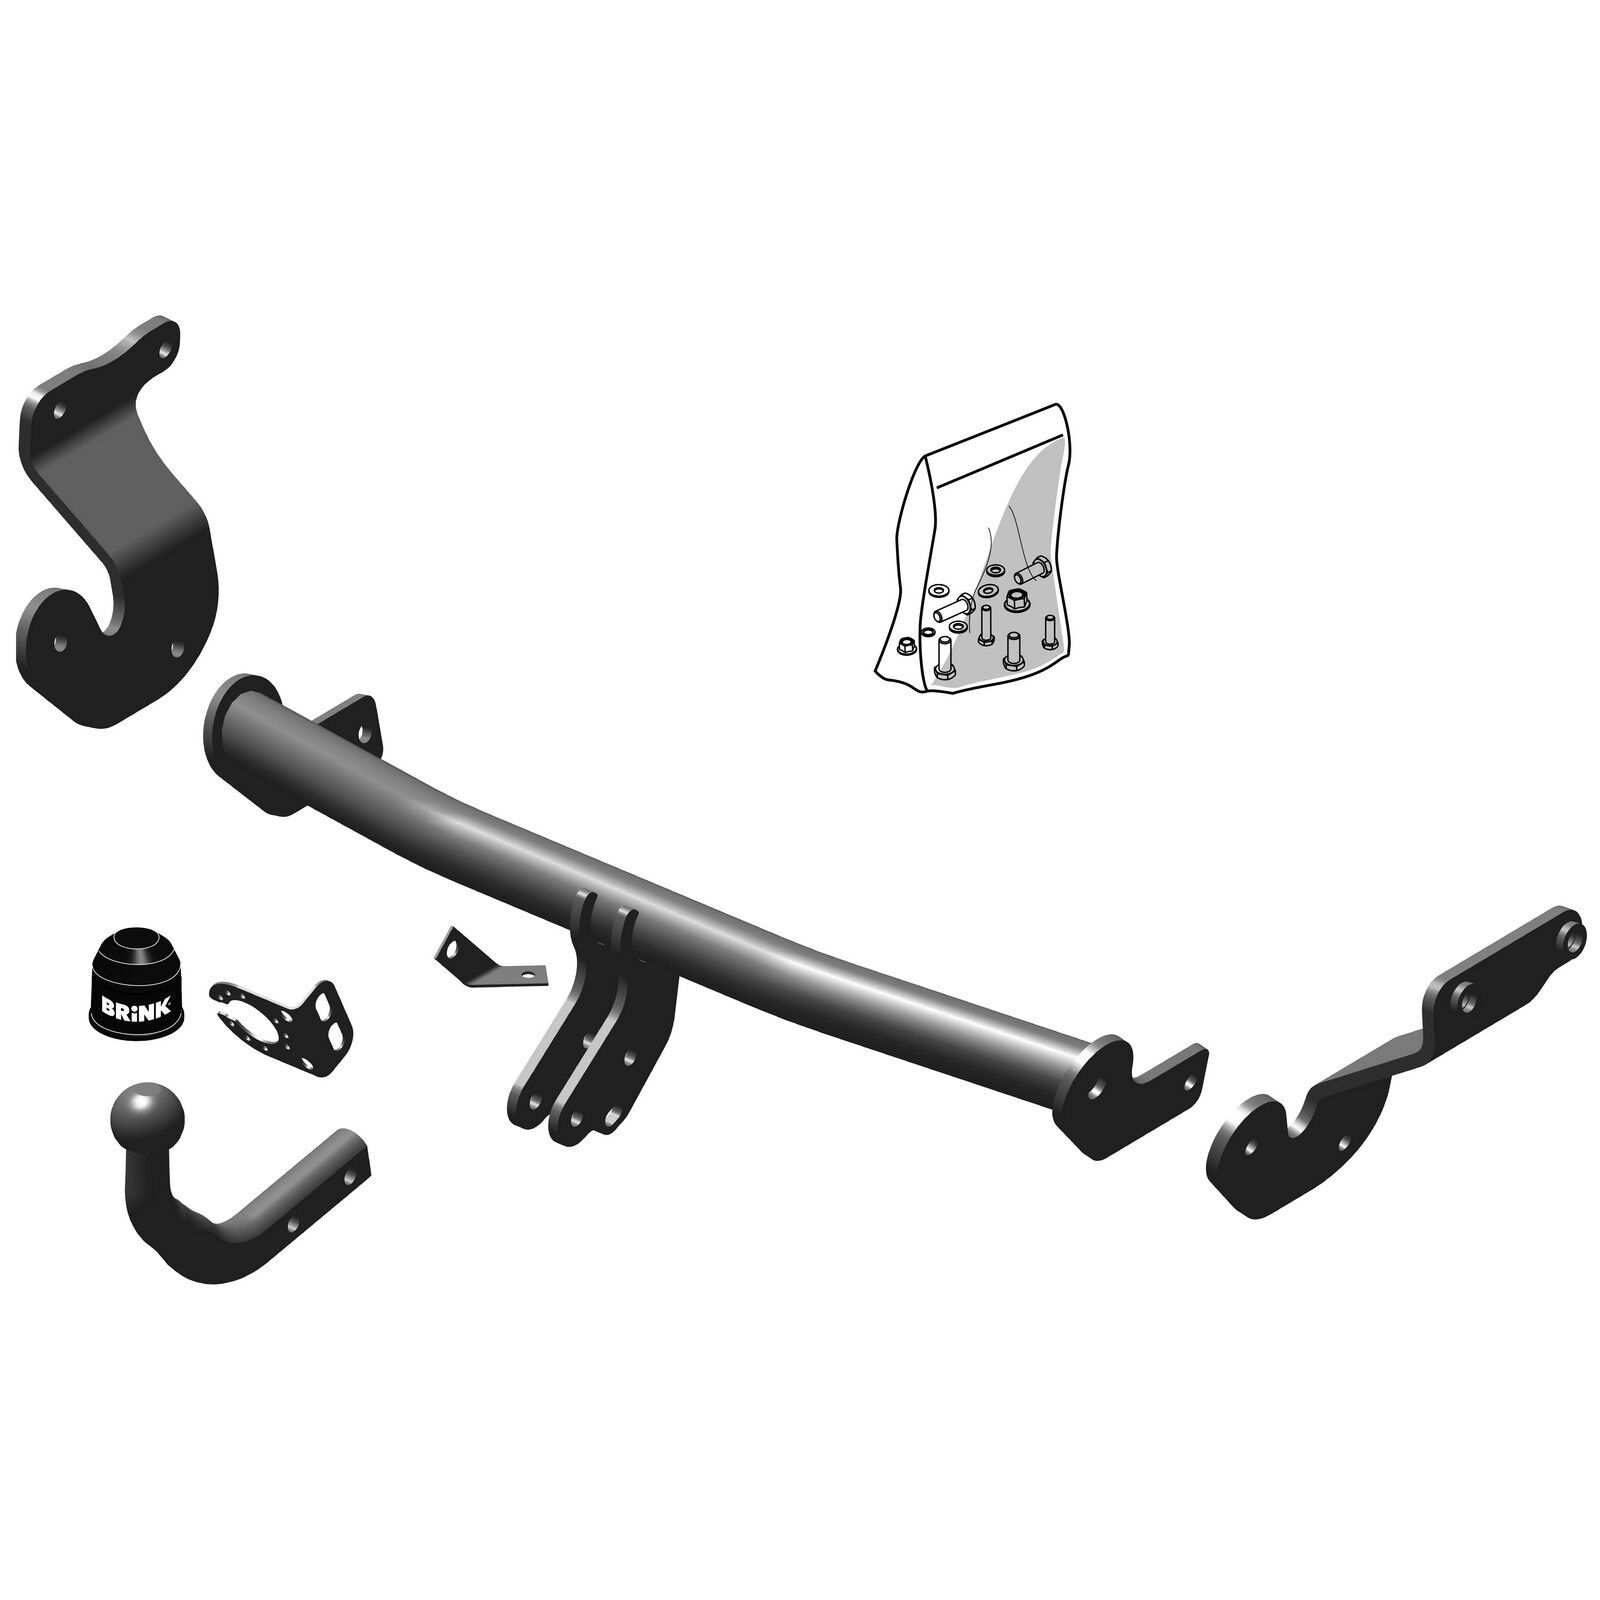 Swan Neck Tow Bar Brink Towbar for Hyundai i40 Saloon 2012 Onwards